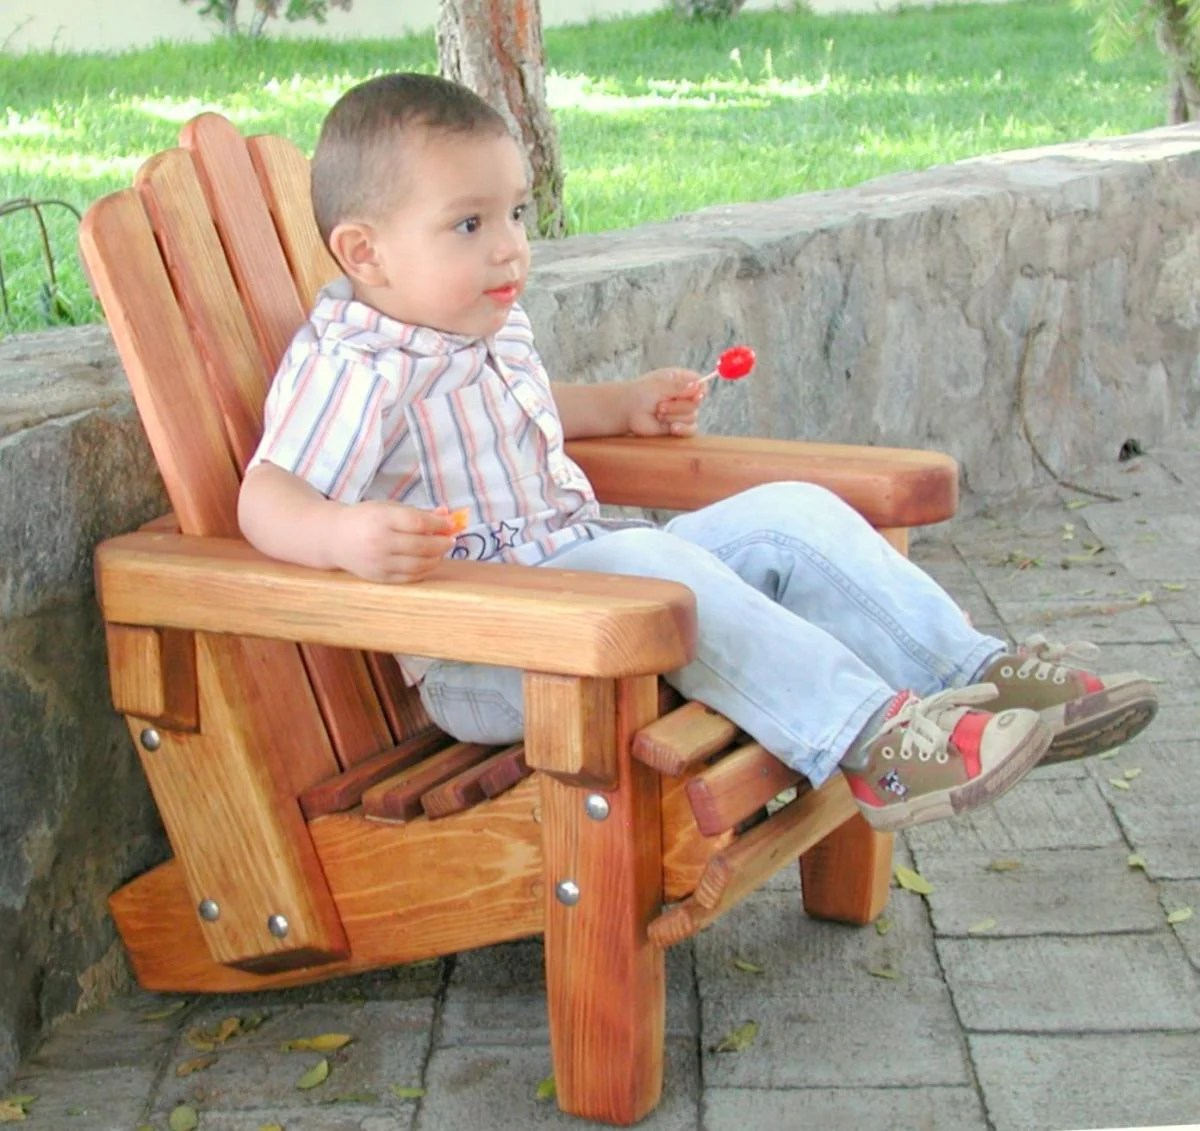 Kid Adirondack Chair Kids Wooden Adirondack Chair Outdoor Wooden Chairs